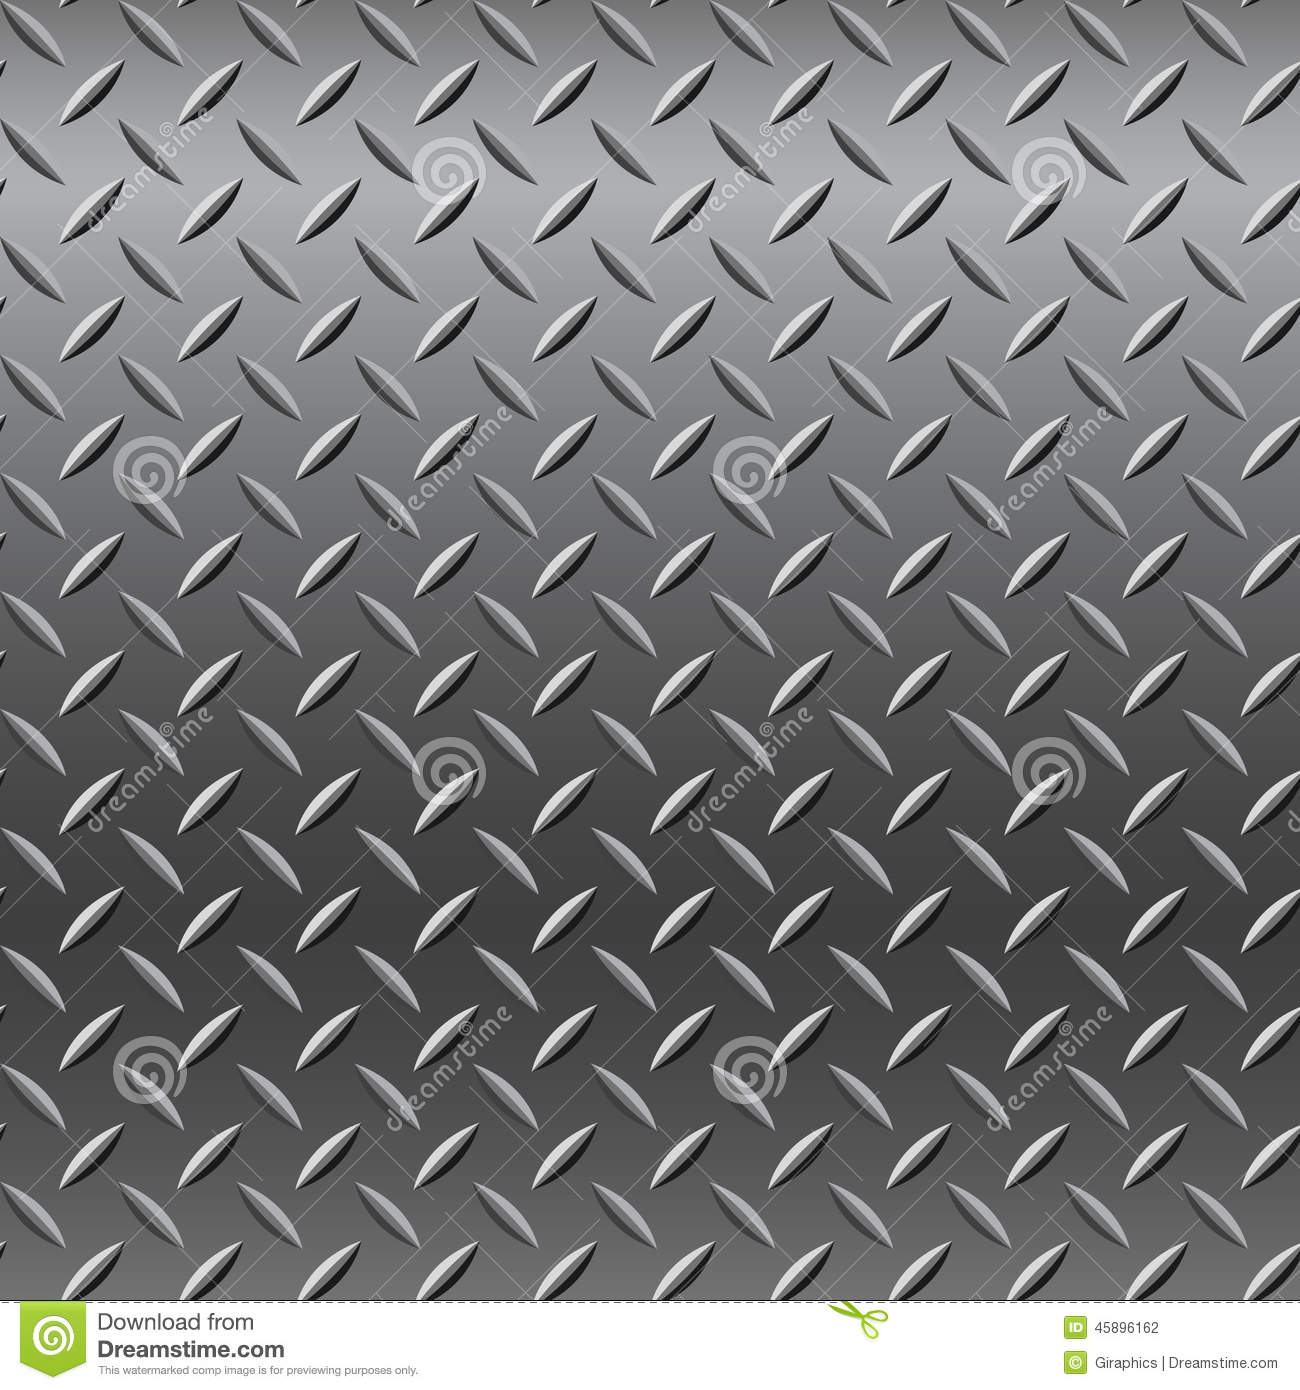 chrome metal background wwwpixsharkcom images